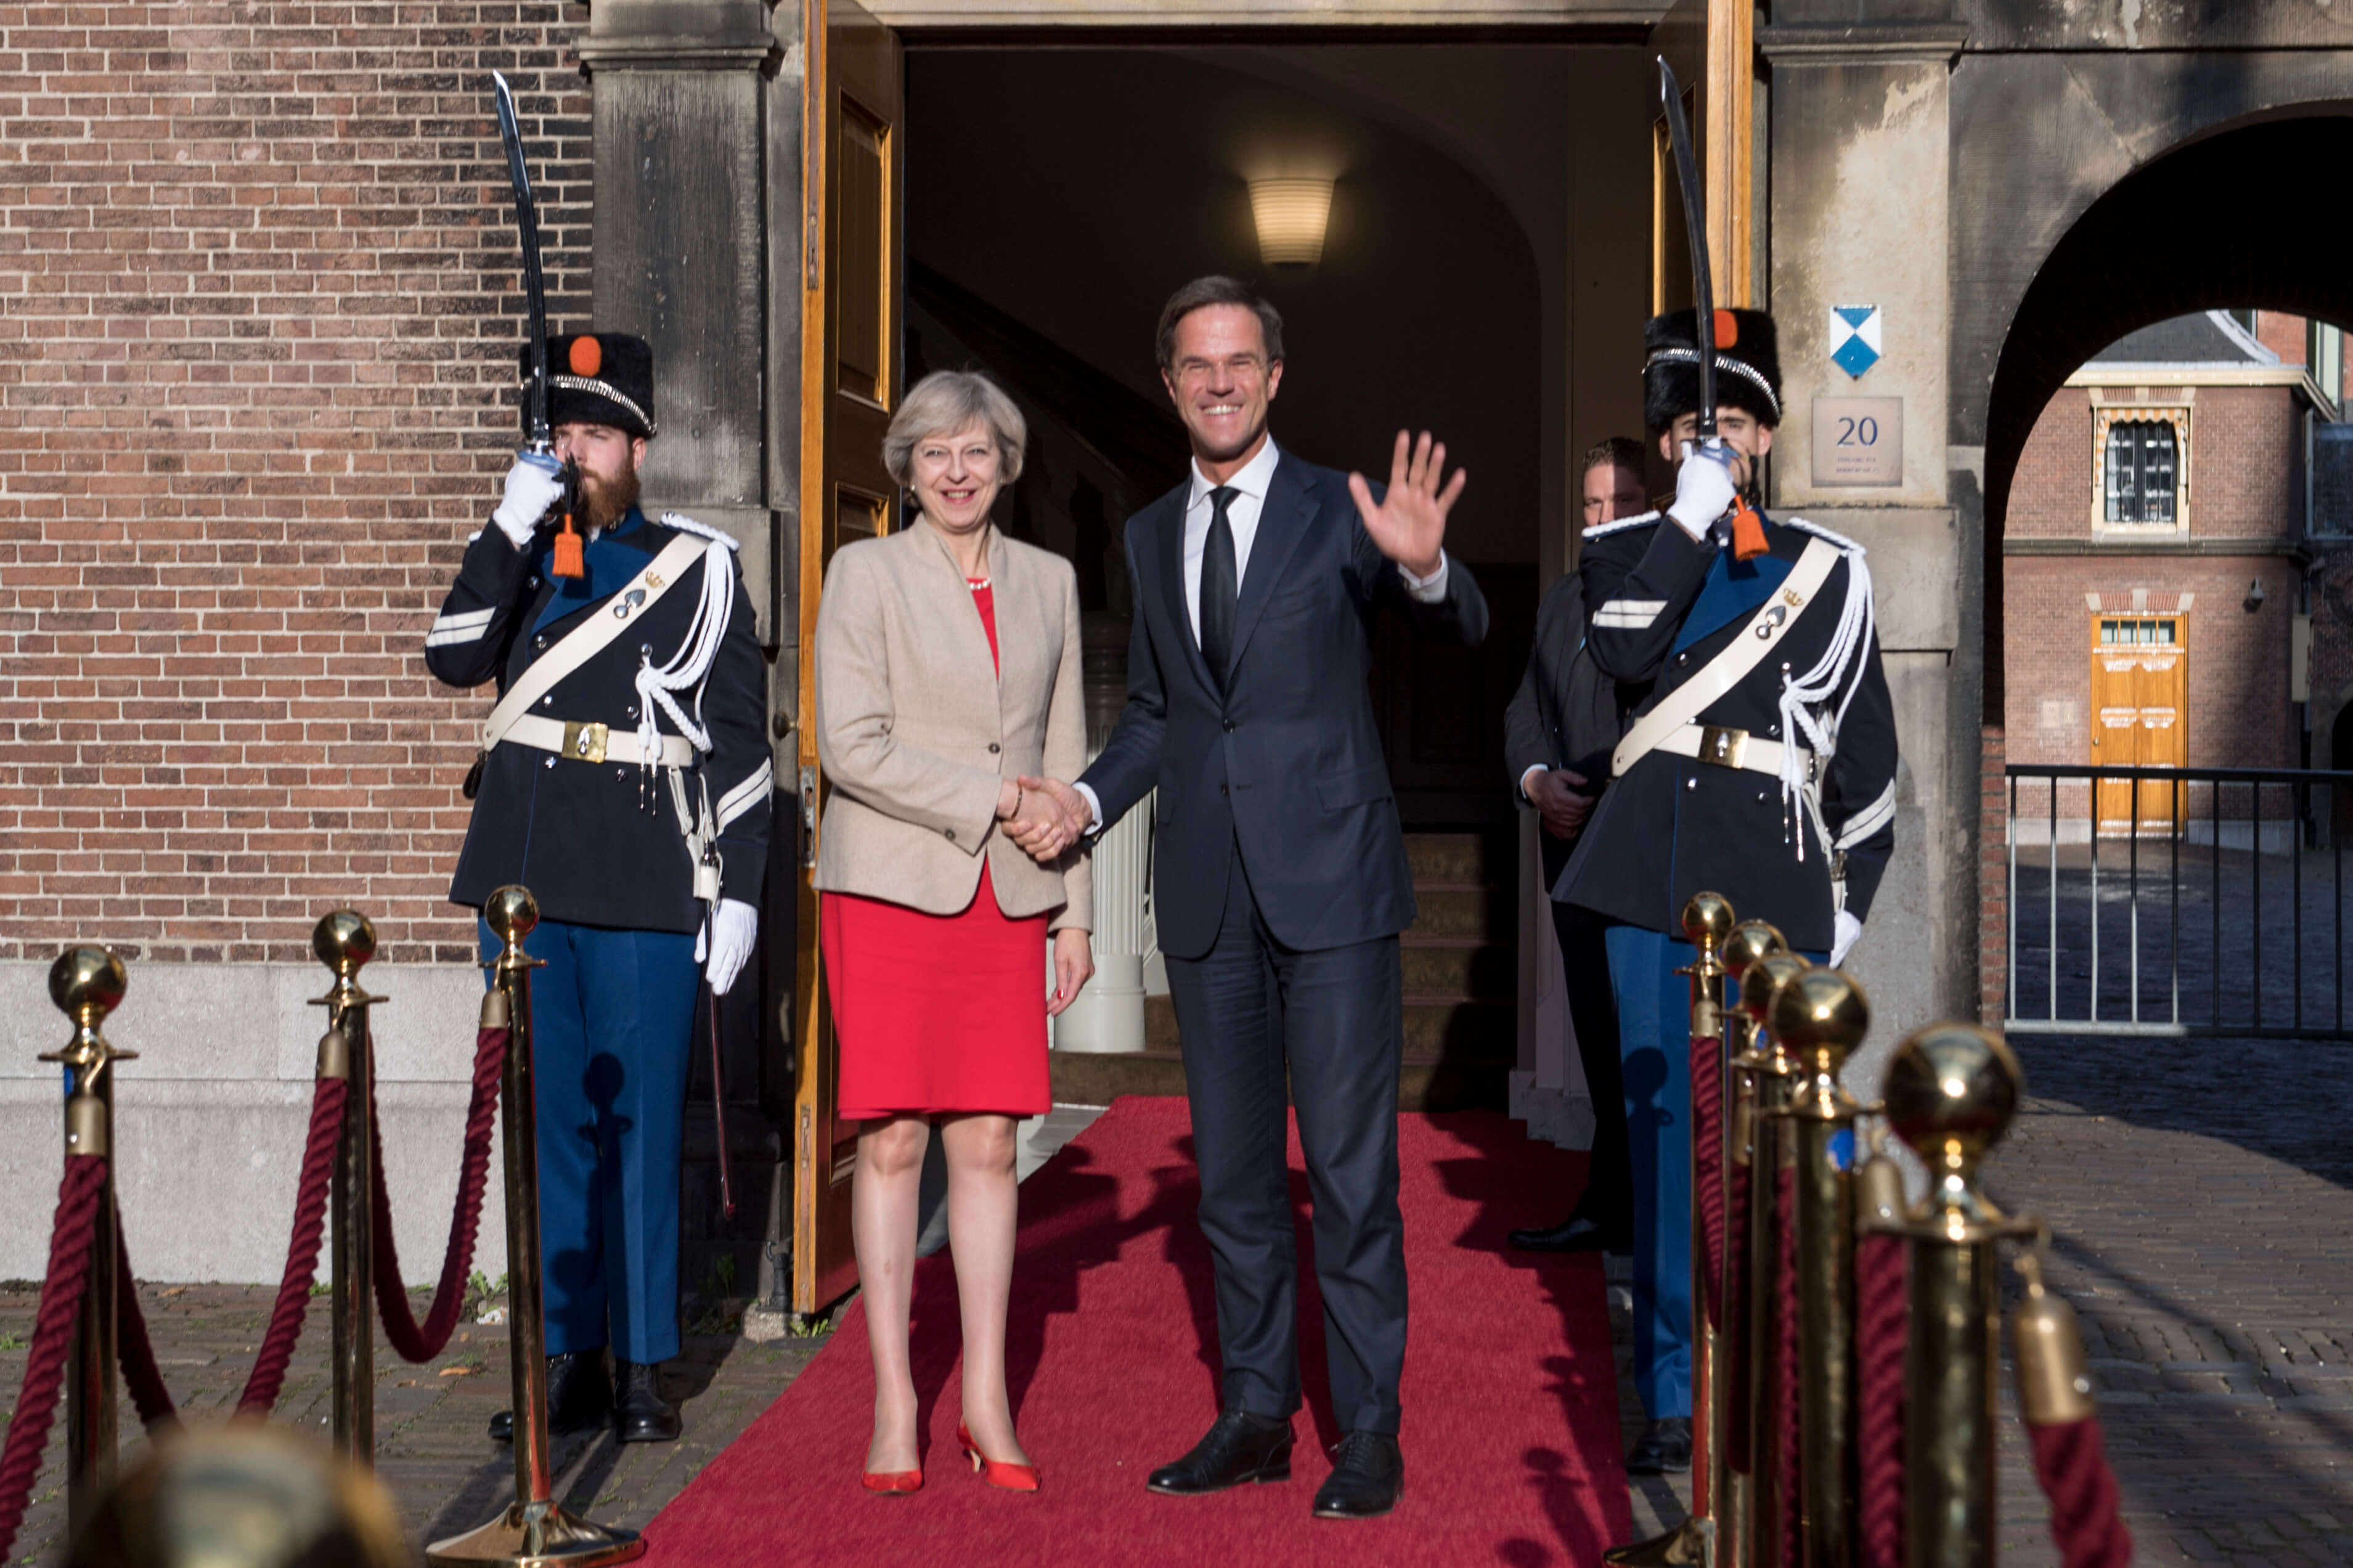 Premier Mark Rutte met de Britse premier Theresa May. ©  Number 10 / Flickr